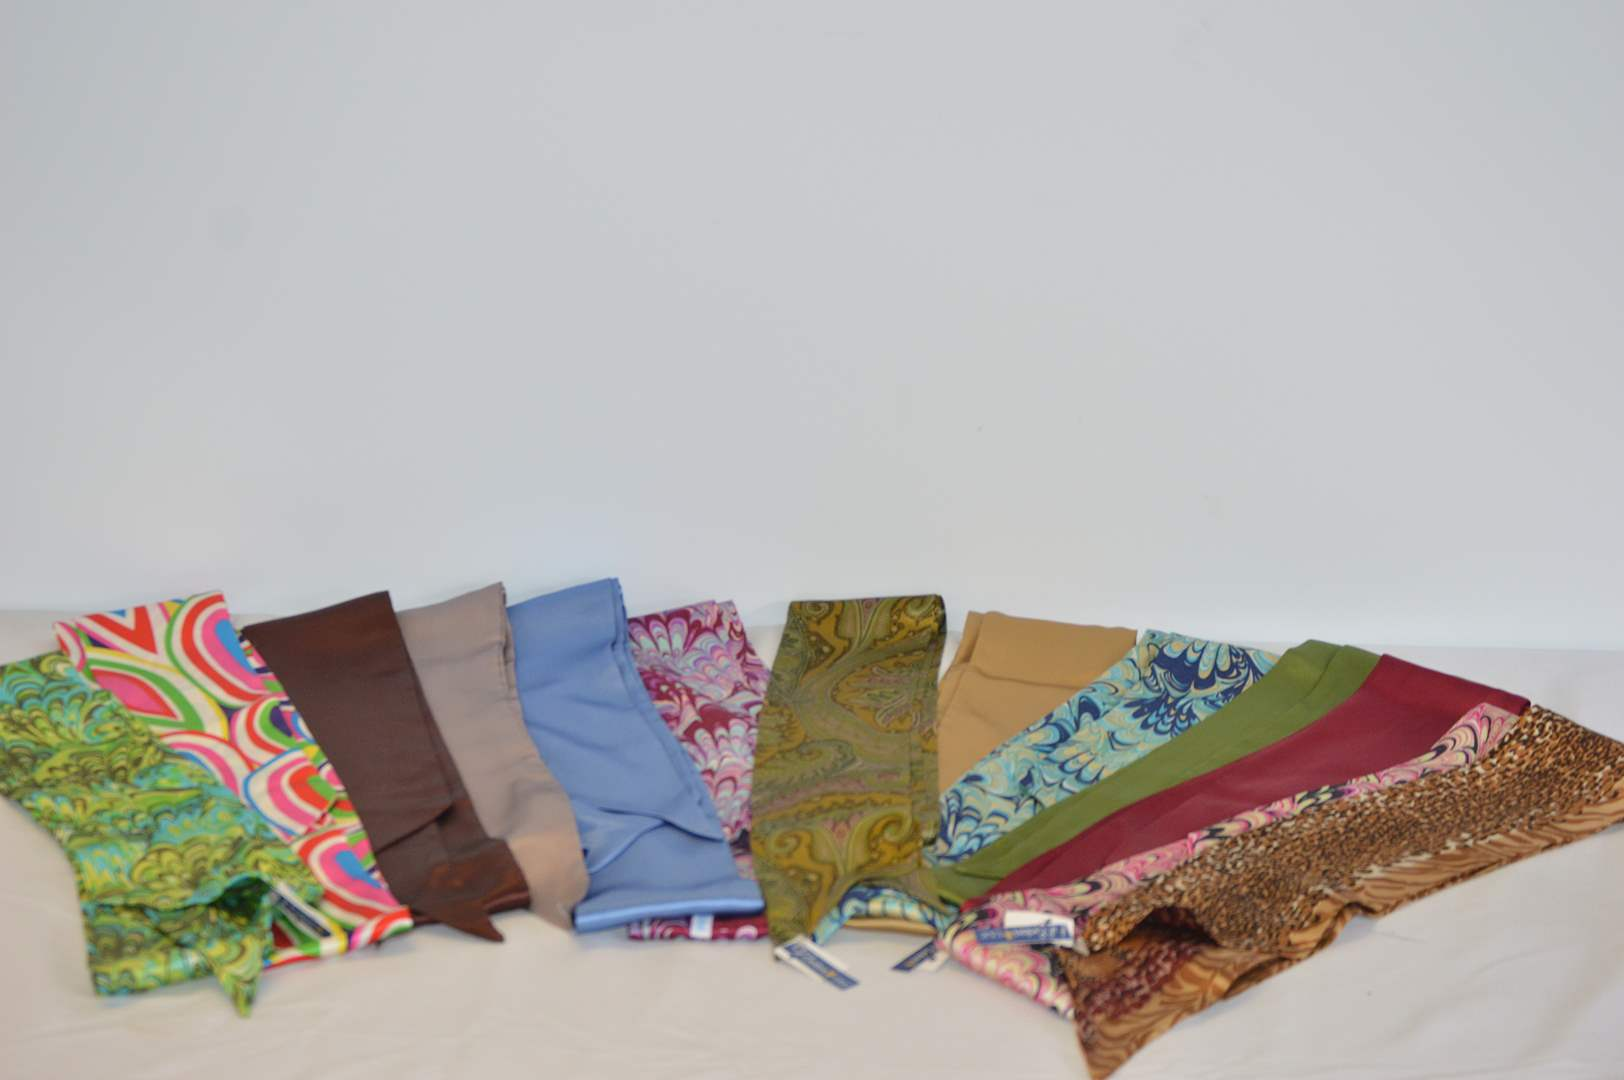 Lot # 53 L. Erikson sash belts - All new with tags (main image)